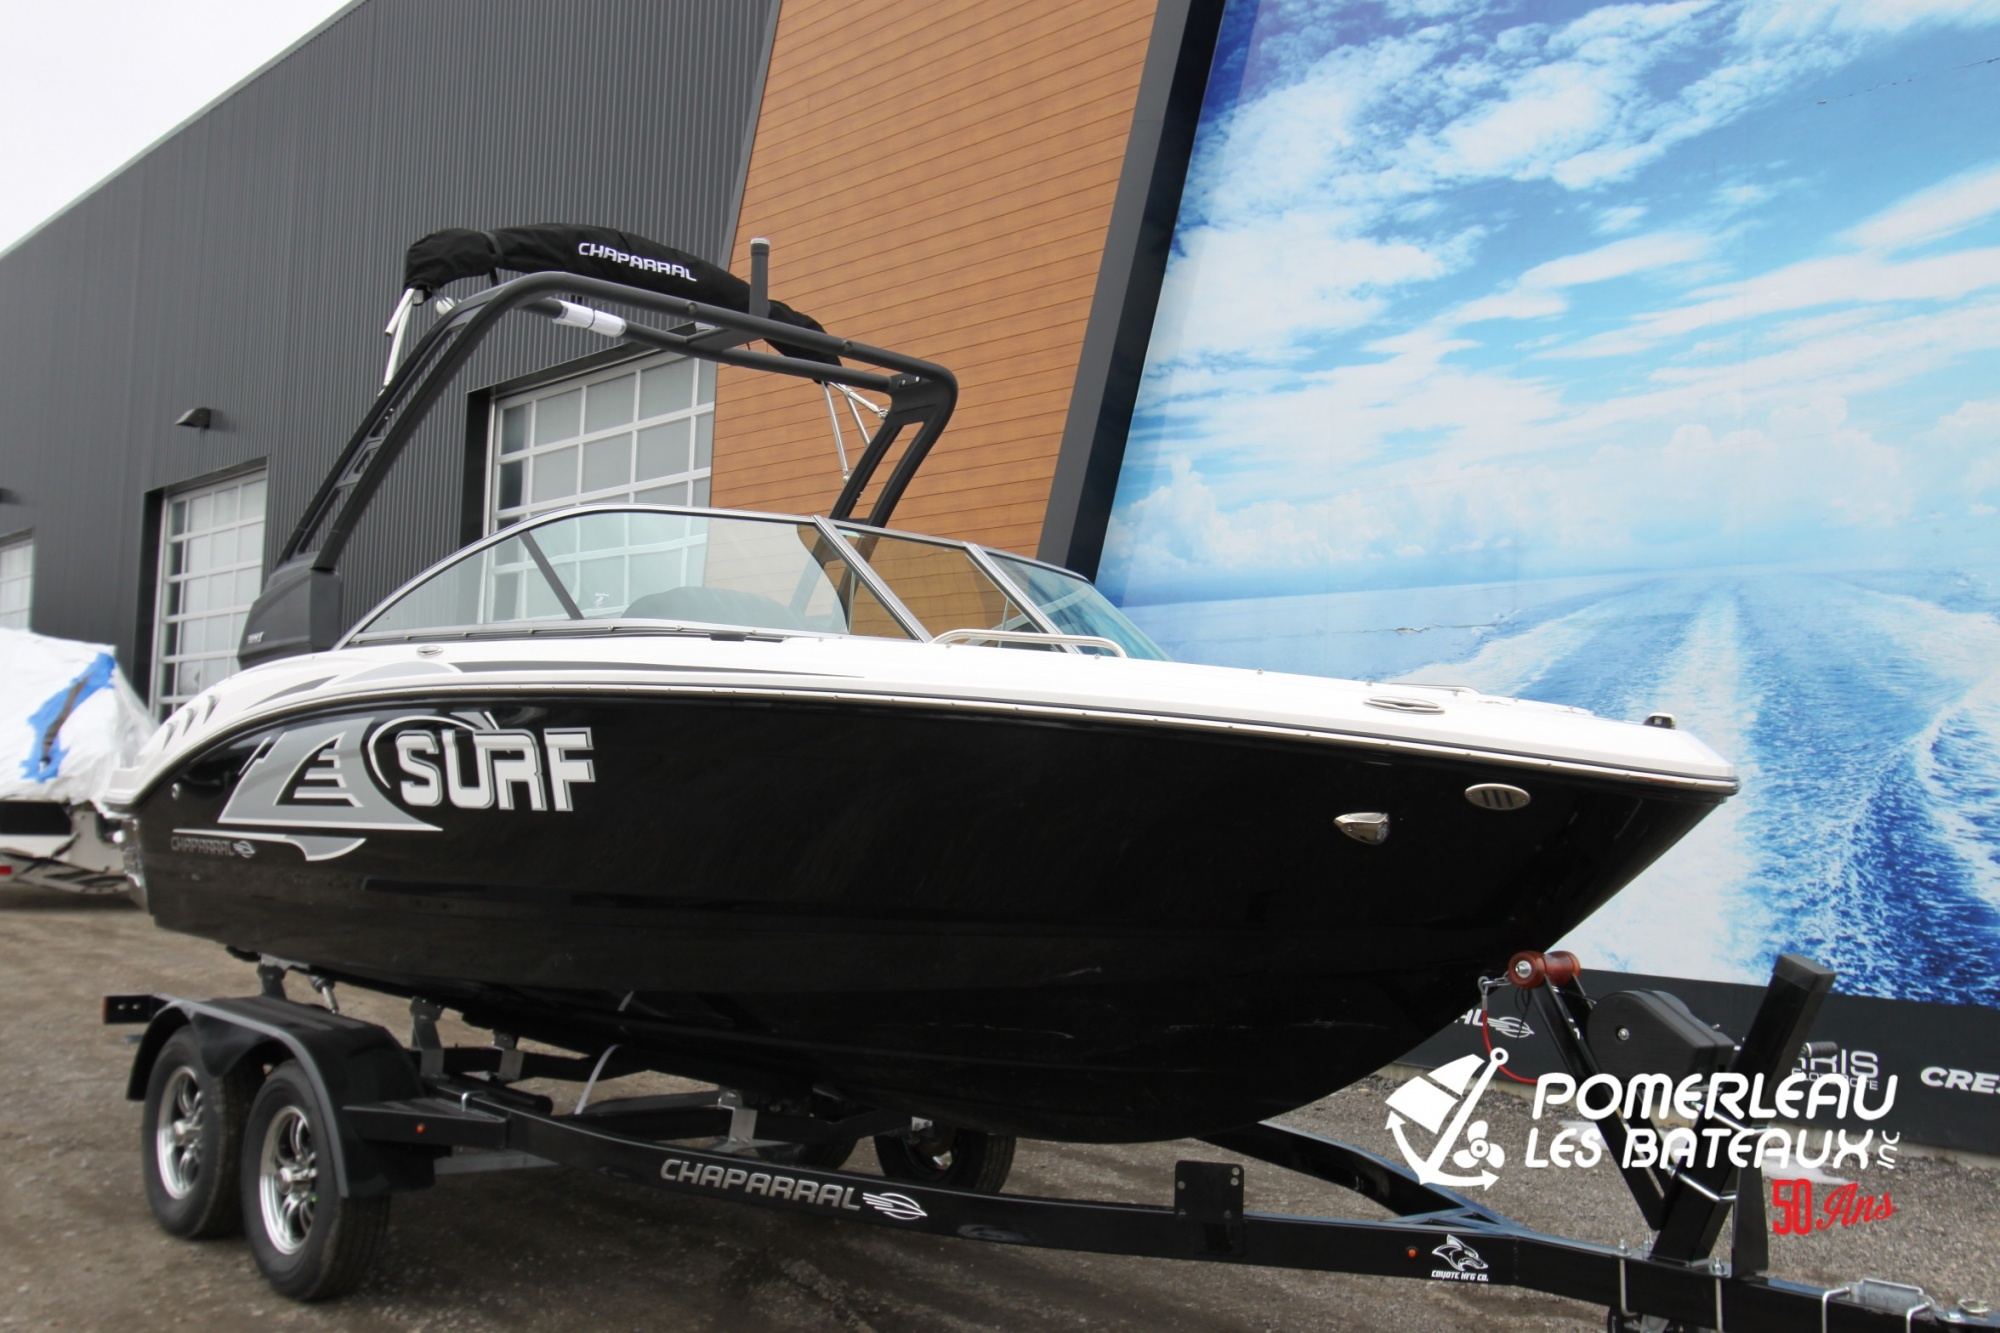 Chaparral 21 Surf - IMG_5145